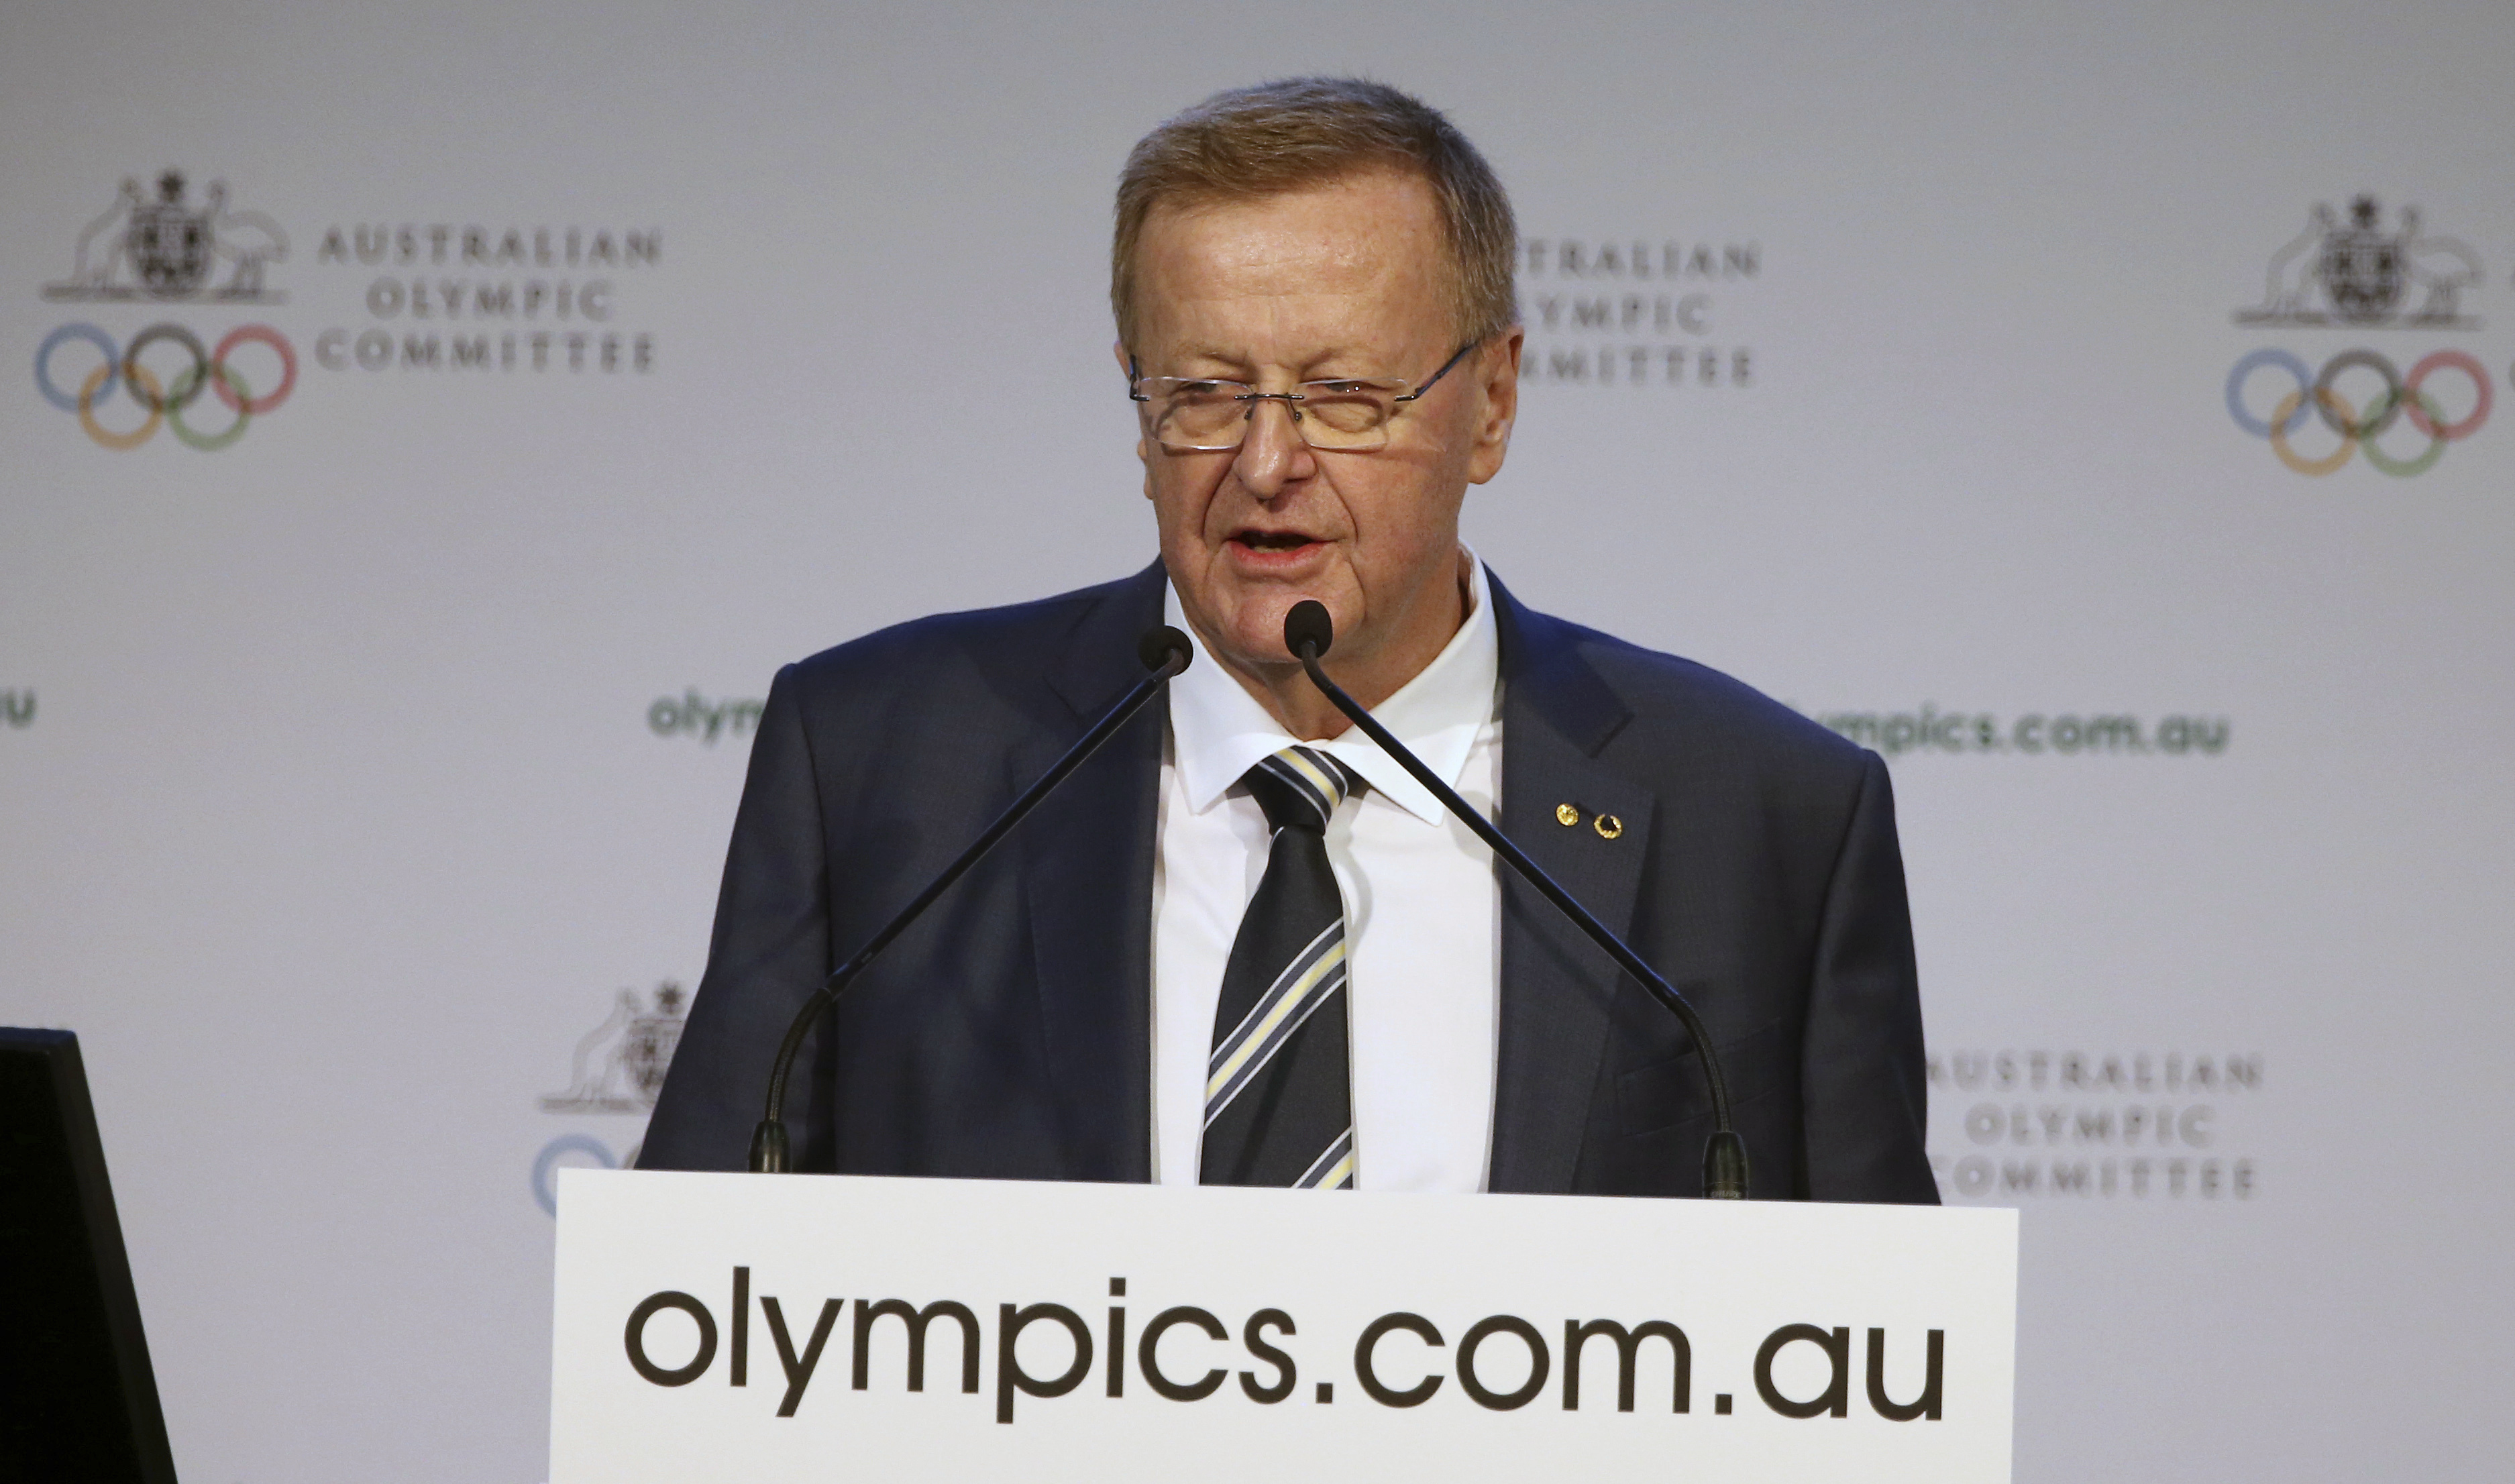 Australian Olympic Committee President John Coates comments on his re-election during the AOC's annual general meeting in Sydney, Saturday, May 6, 2017. Coates will serve another four-year term as president of the Australian Olympic Committee after beatin